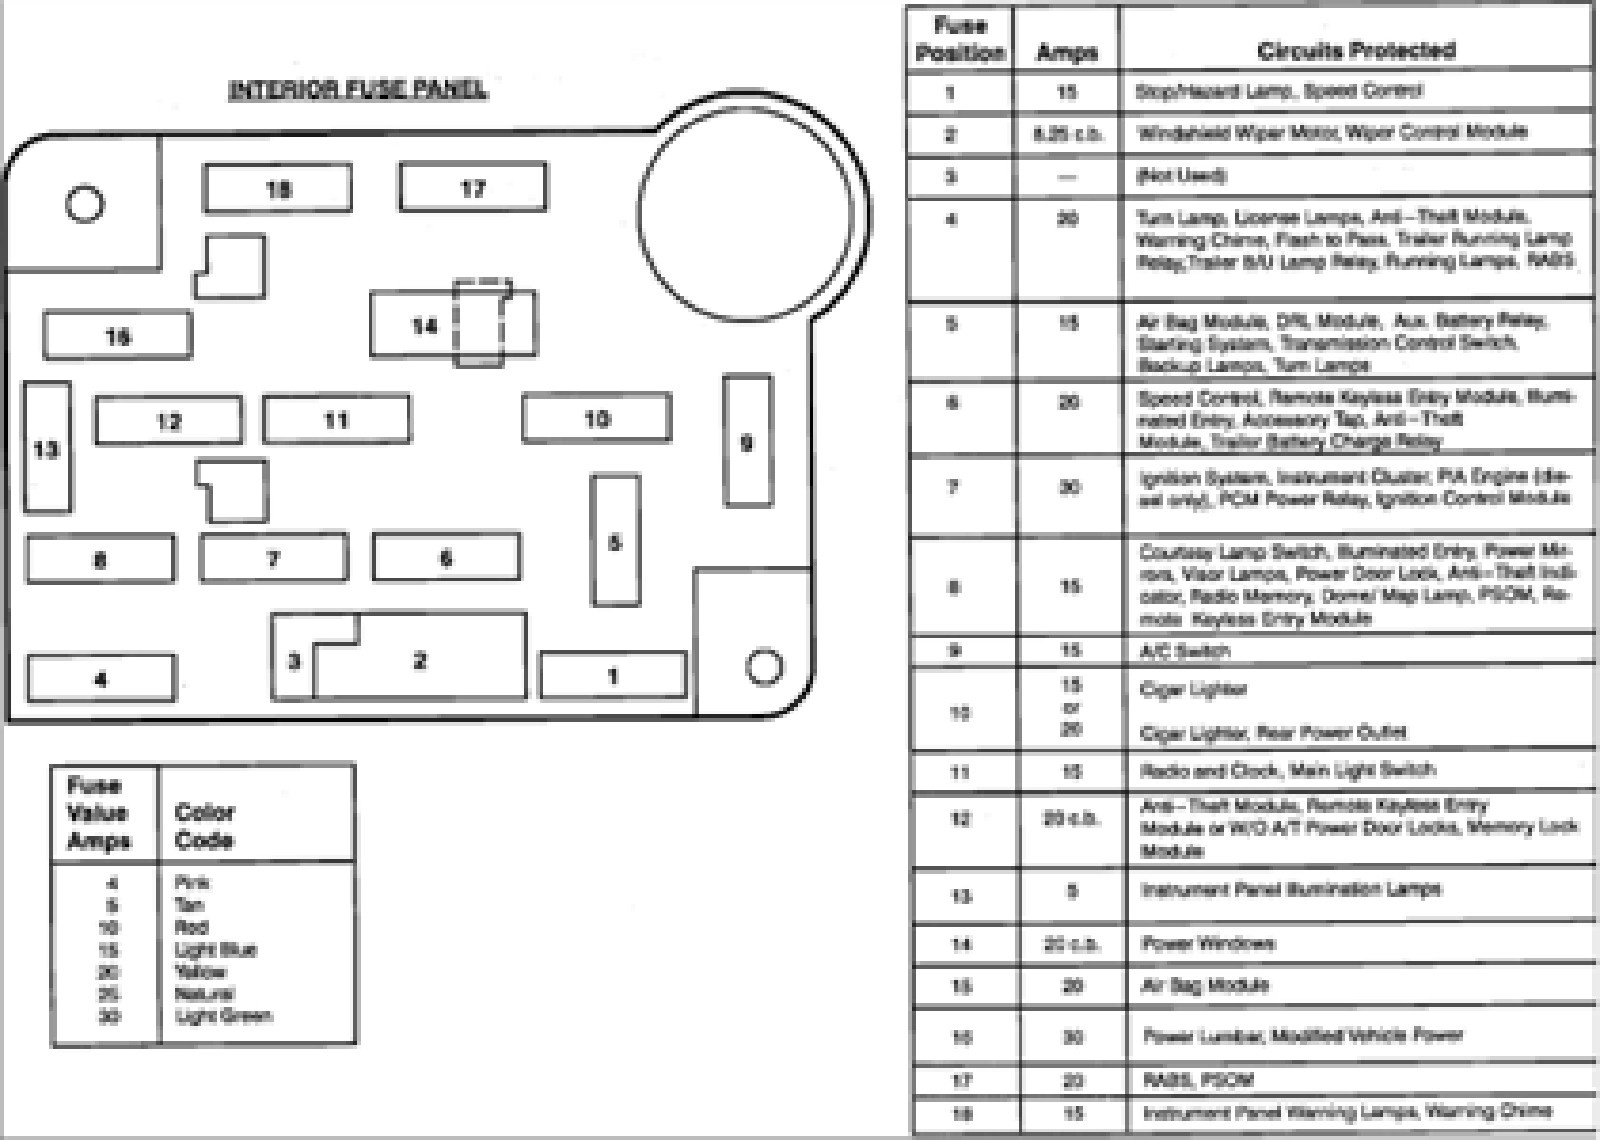 Fuse Line Diagram Wiring Data 2001 Ranger 1989 Box Schema Online F150